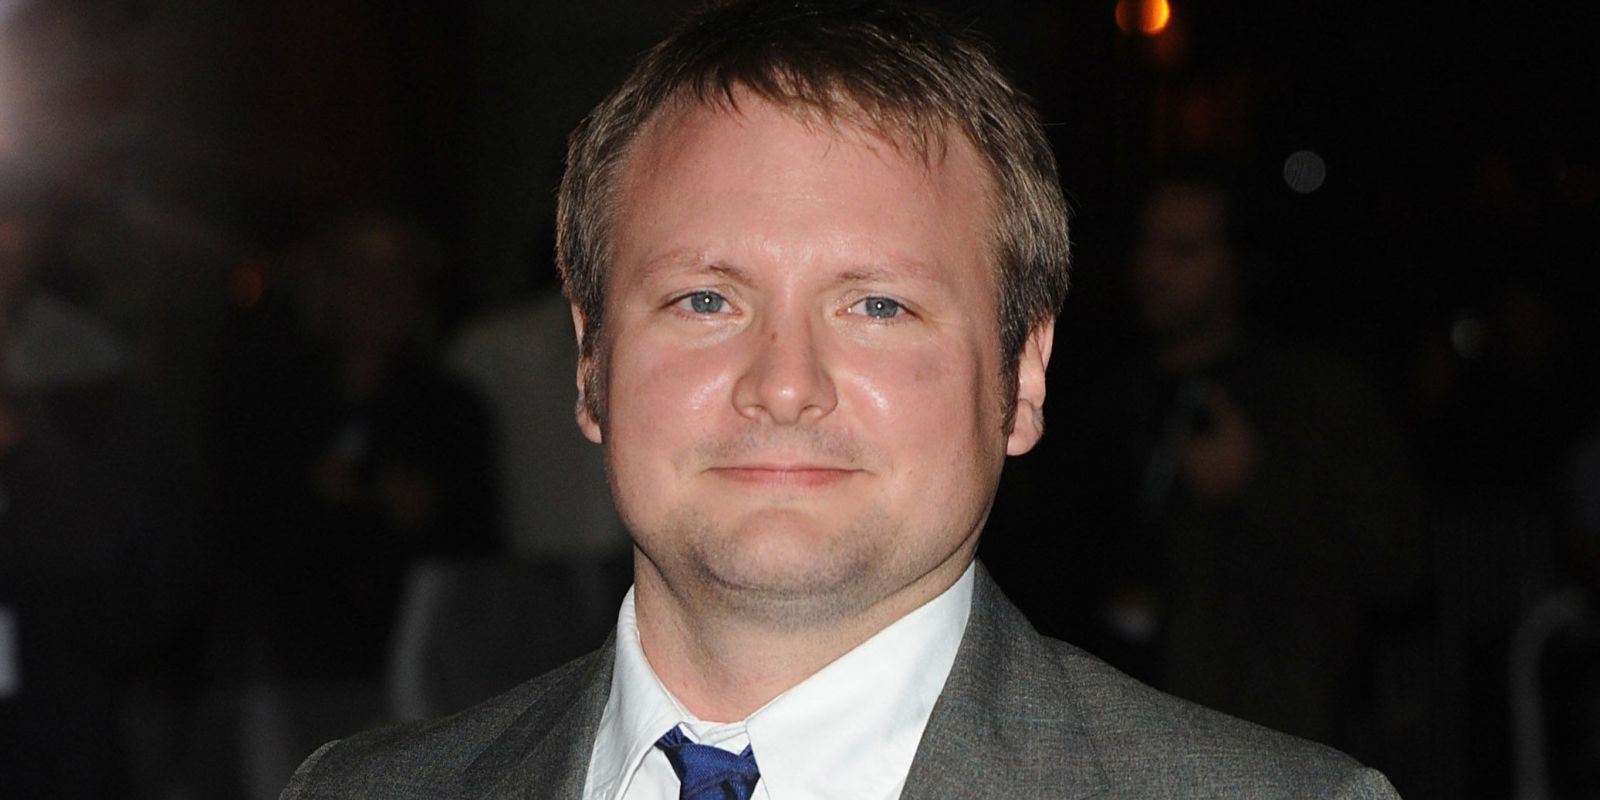 rian johnson prequelsrian johnson facebook, rian johnson likes reylo, rian johnson star wars, rian johnson net worth, rian johnson wiki, rian johnson prequels, rian johnson director, rian johnson breaking bad, rian johnson instagram, rian johnson breaking bad episodes